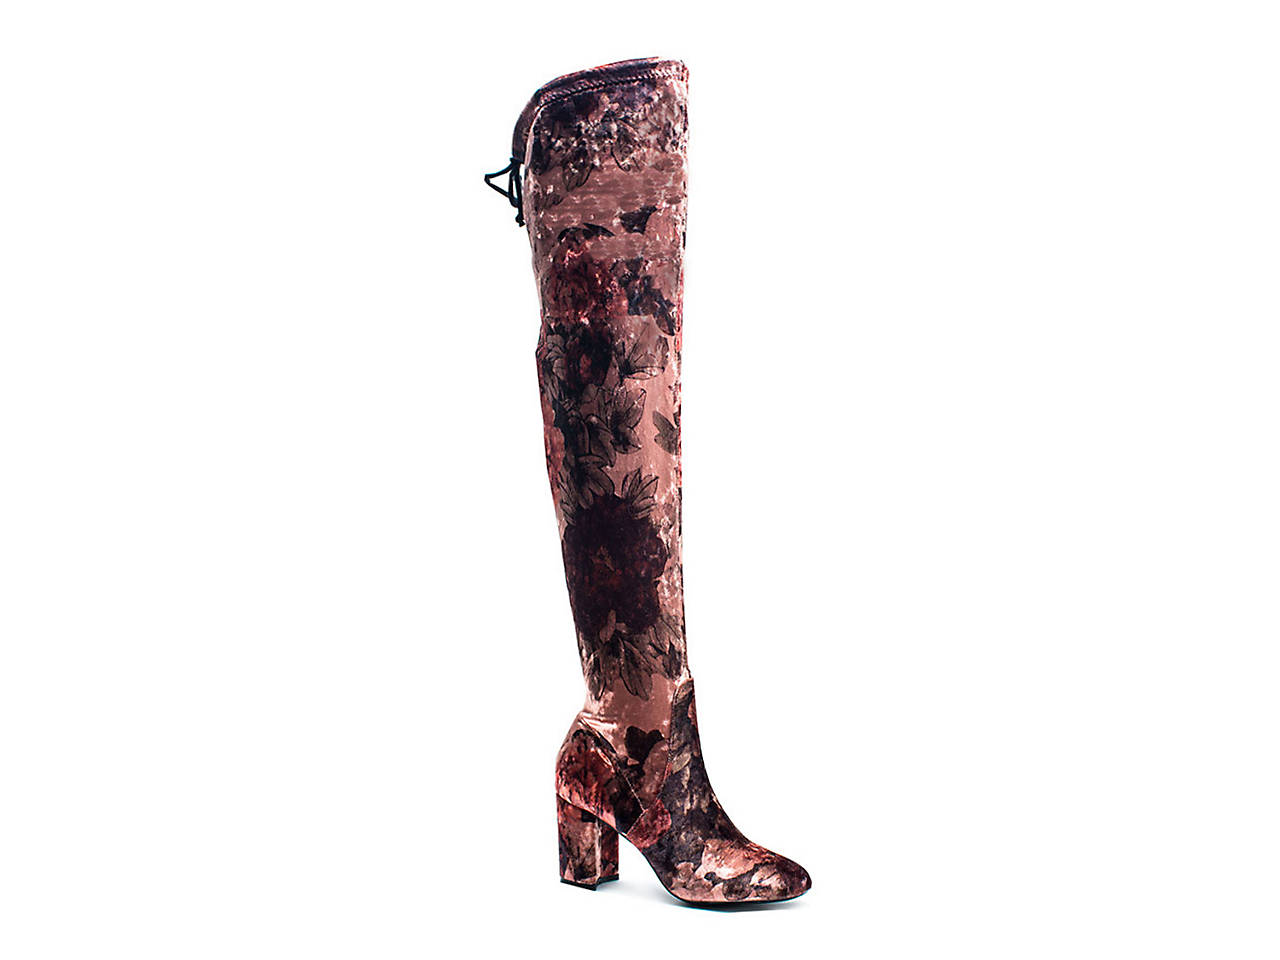 027a797e4f59 GC Shoes Lotus Velvet Over The Knee Boot Women s Shoes